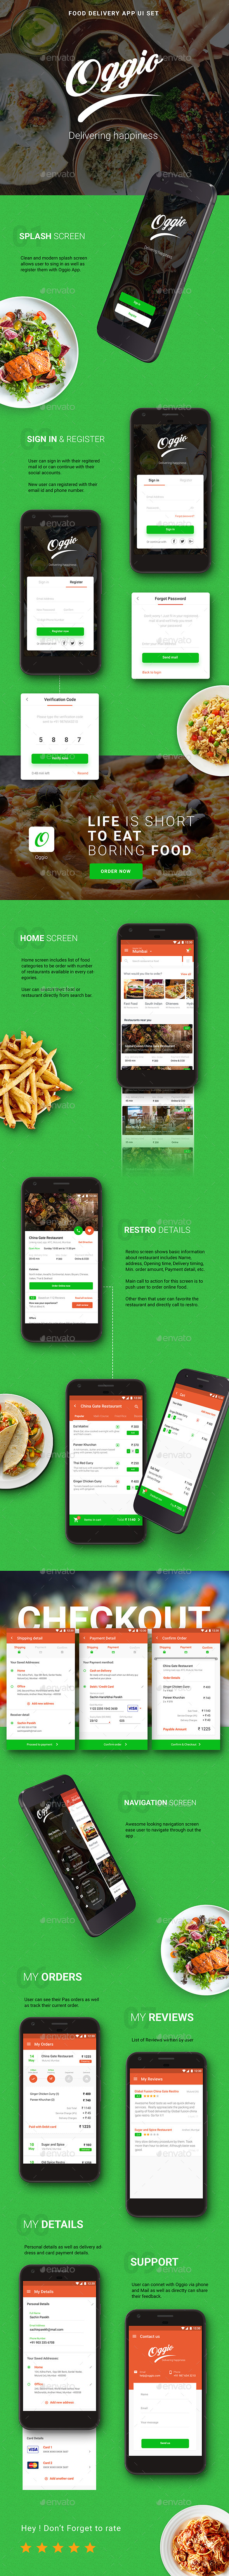 Food Delivery App |  Oggio  | App UI Set (User Interfaces)